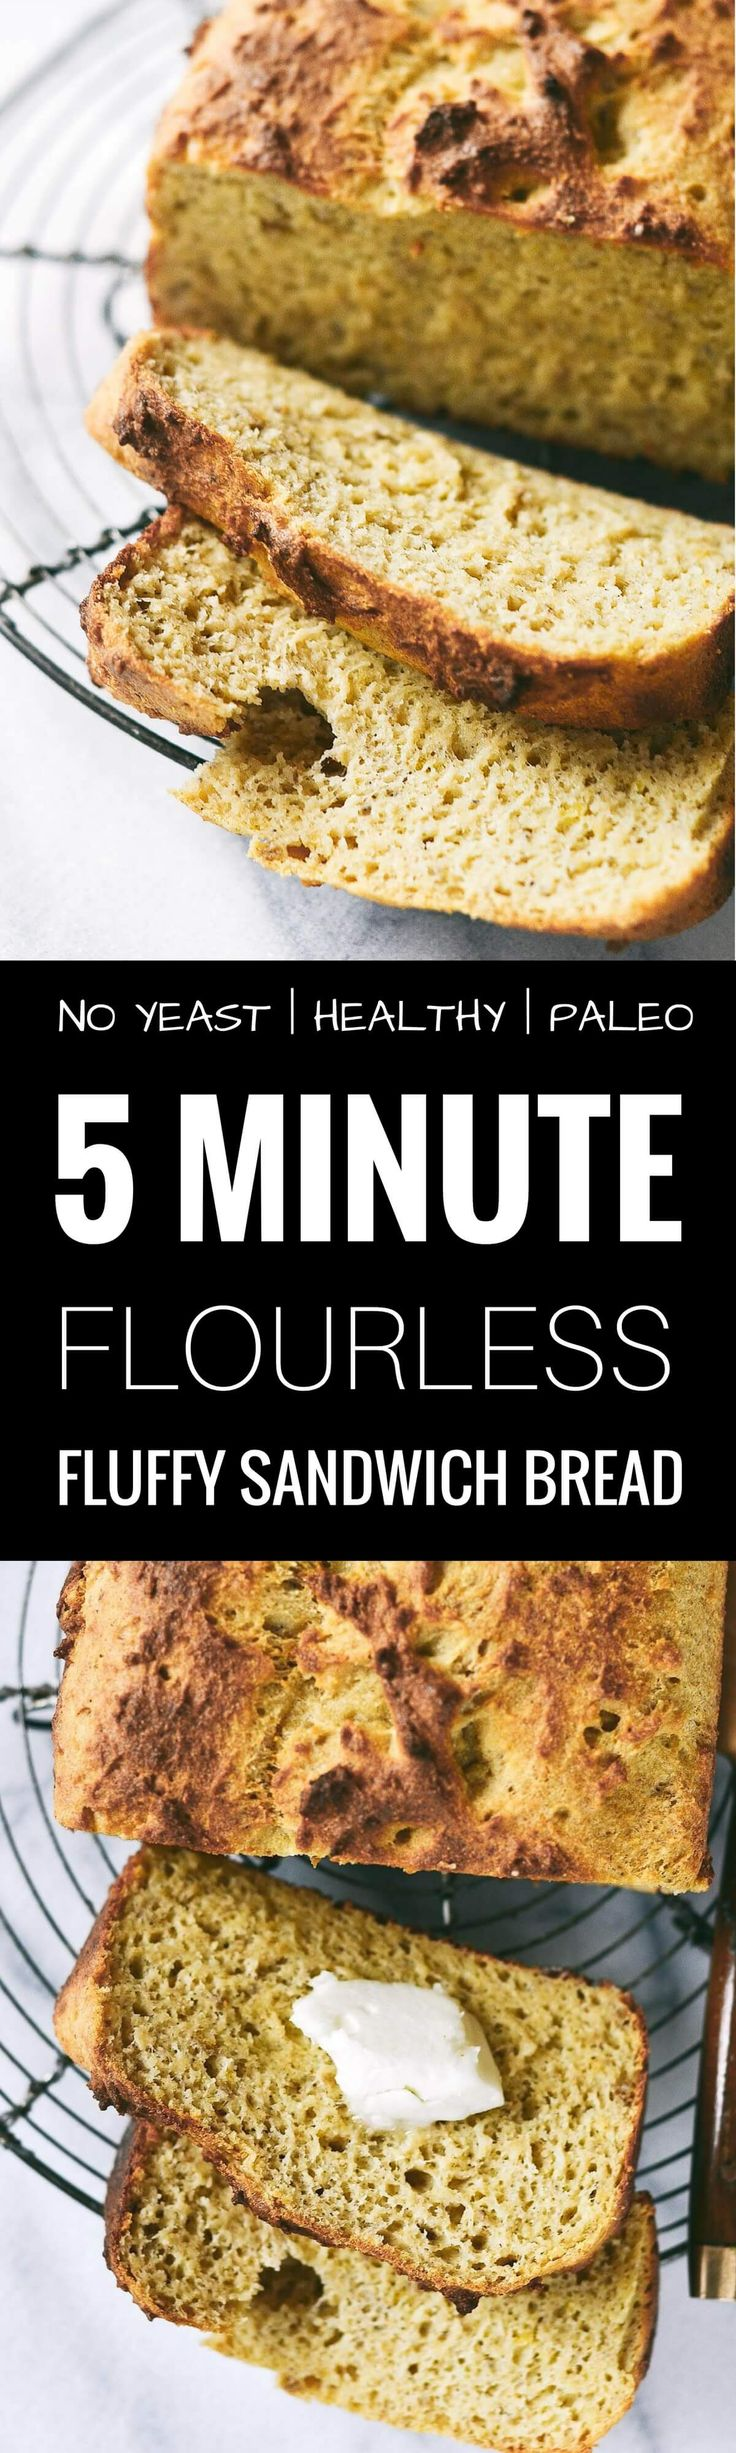 There IS life after wheat! 5 Minute Perfect paleo sandwich bread. Toastable. Sandwichable. Low carb. Grain free. Yeast free. Light. Fluffy. Awesome crust. Paleo bread recipe. Fluffy sandwich bread recipe. Best gluten free sandwich bread. Best paleo bread.